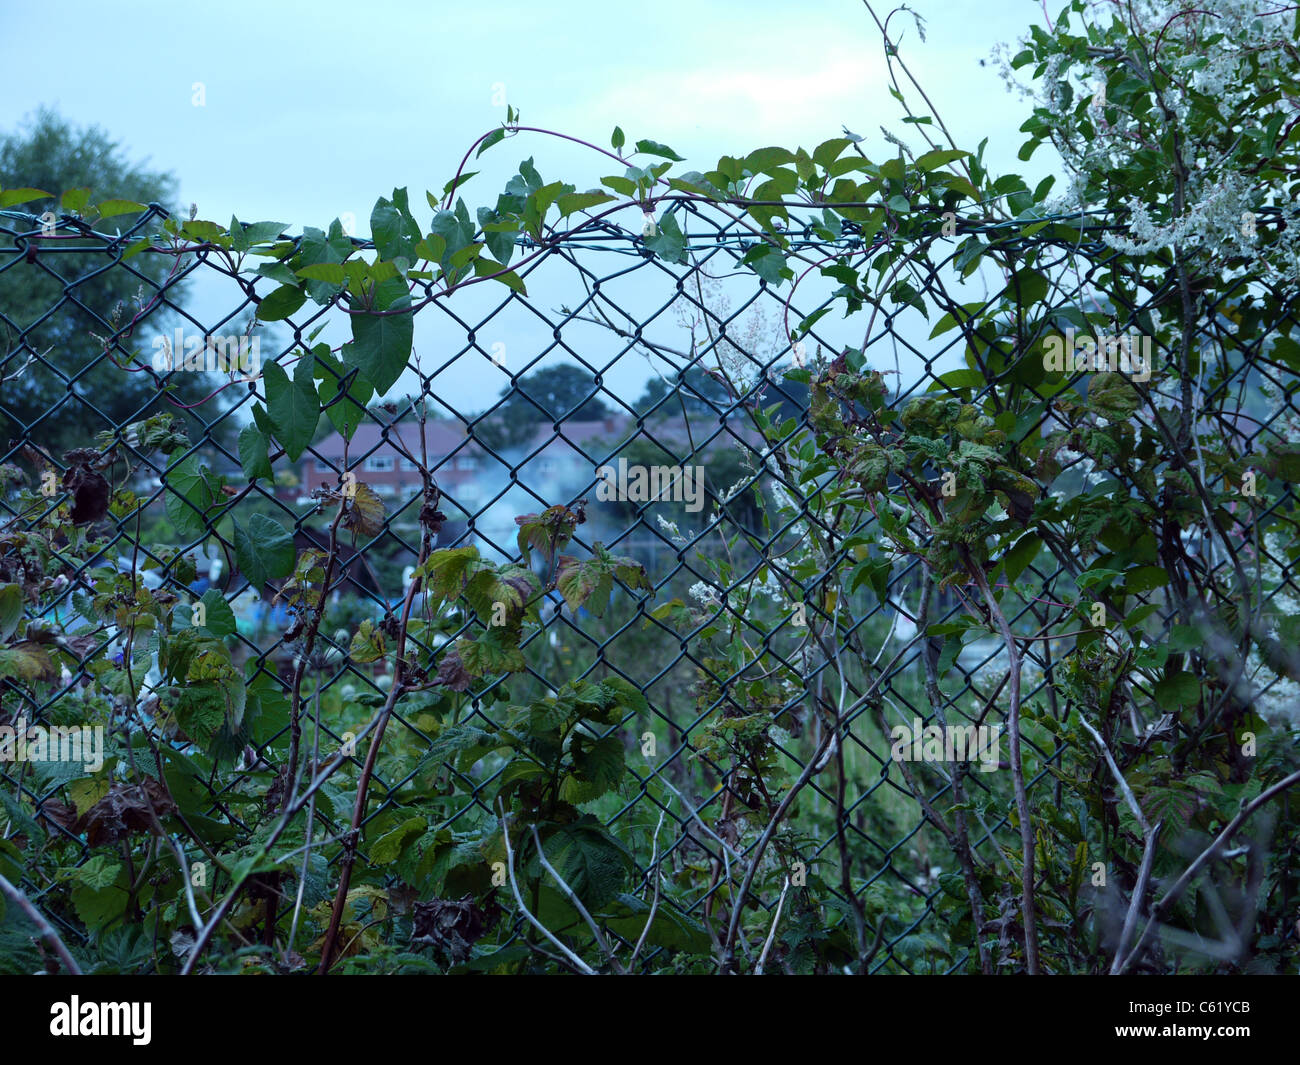 Overgrown vines smothering the wire fence that surrounds allotments ...